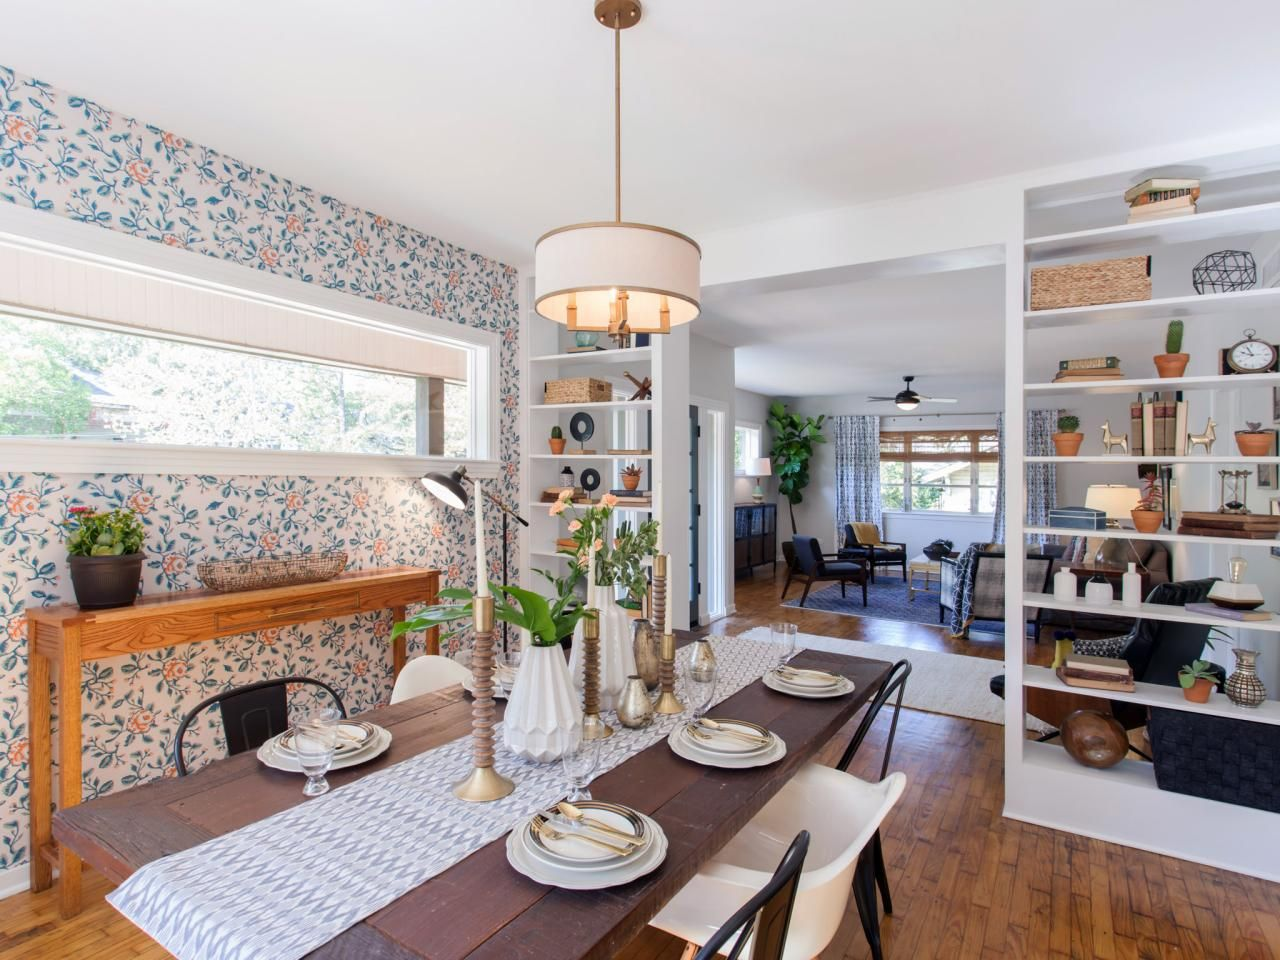 Home Town From Hgtv How Pretty Is That Custom Wallpaper I Love This Bright Eclectic Traditional Modern Dining Ro Home Town Hgtv Home Small Town Living